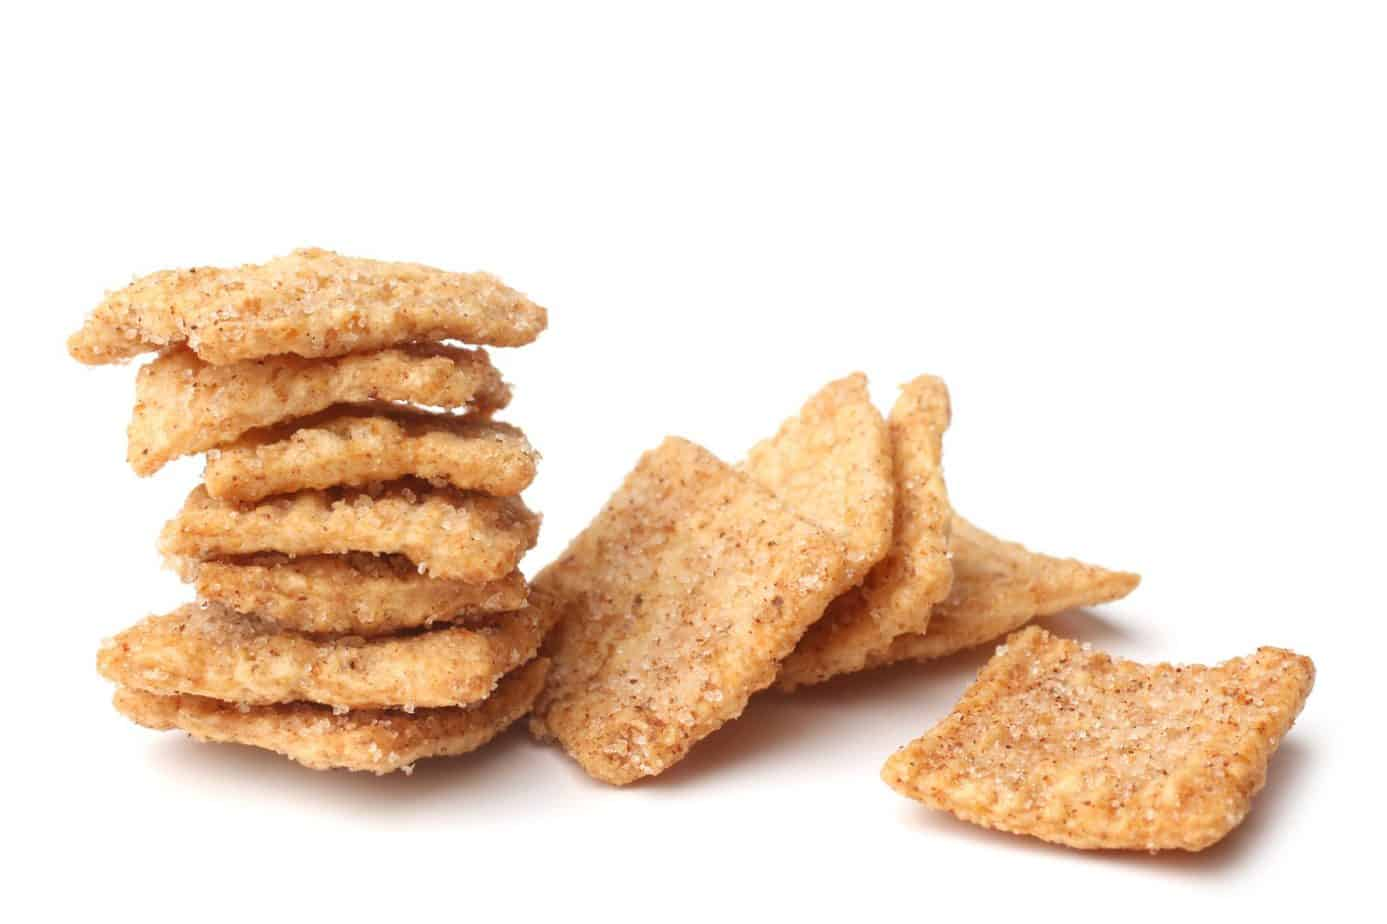 Is cinnamon toast crunch vegan?